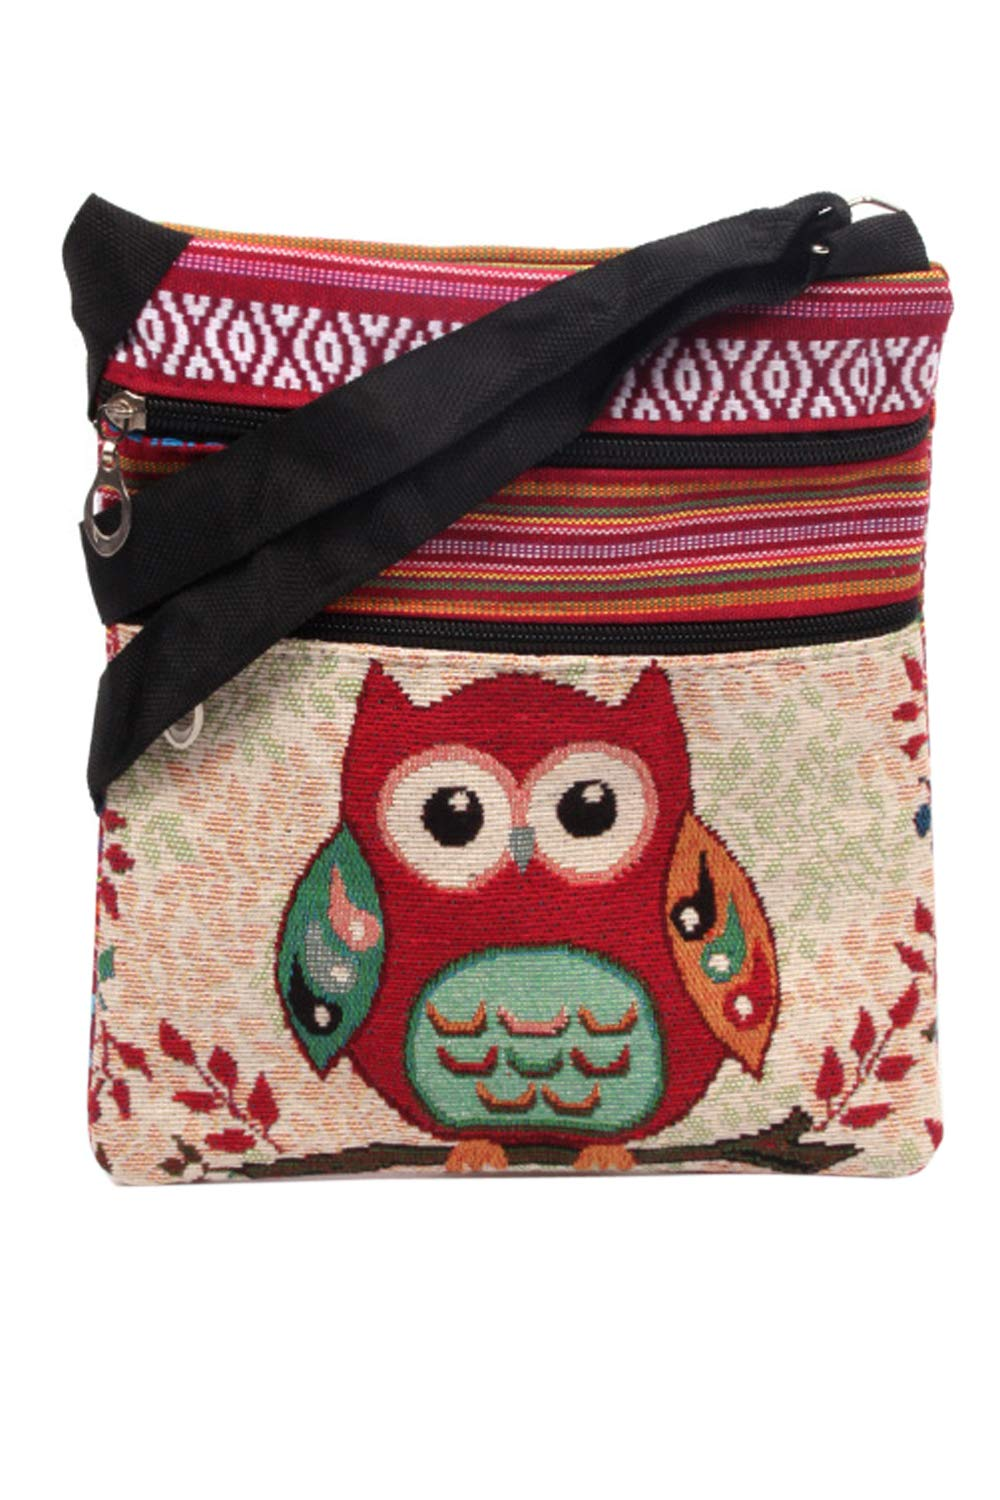 Women Ethnic Harper Crossbody Bag Owl Print Phone Wallet Purse Red One Size